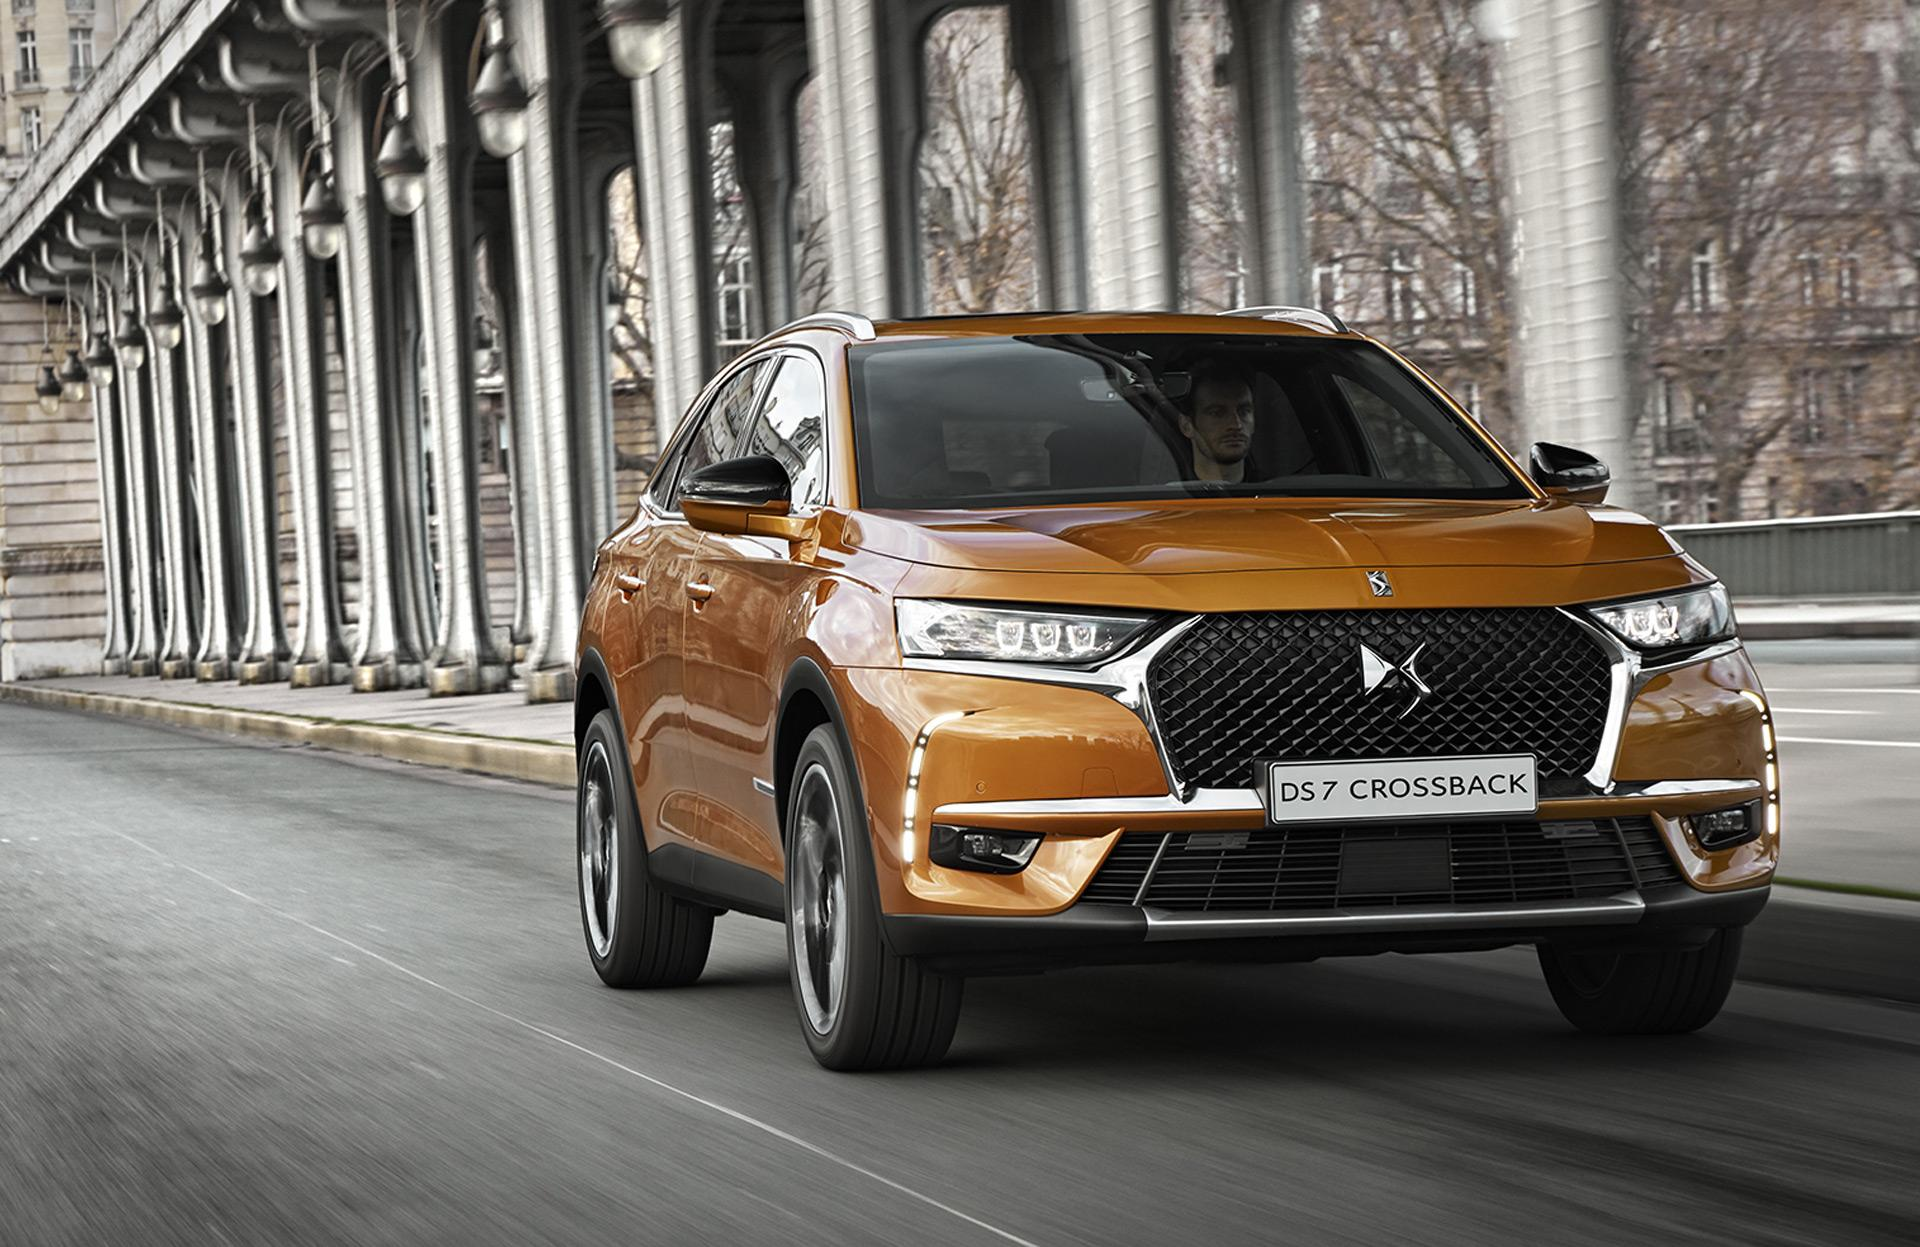 French luxury brand DS launches DS 7 Crossback